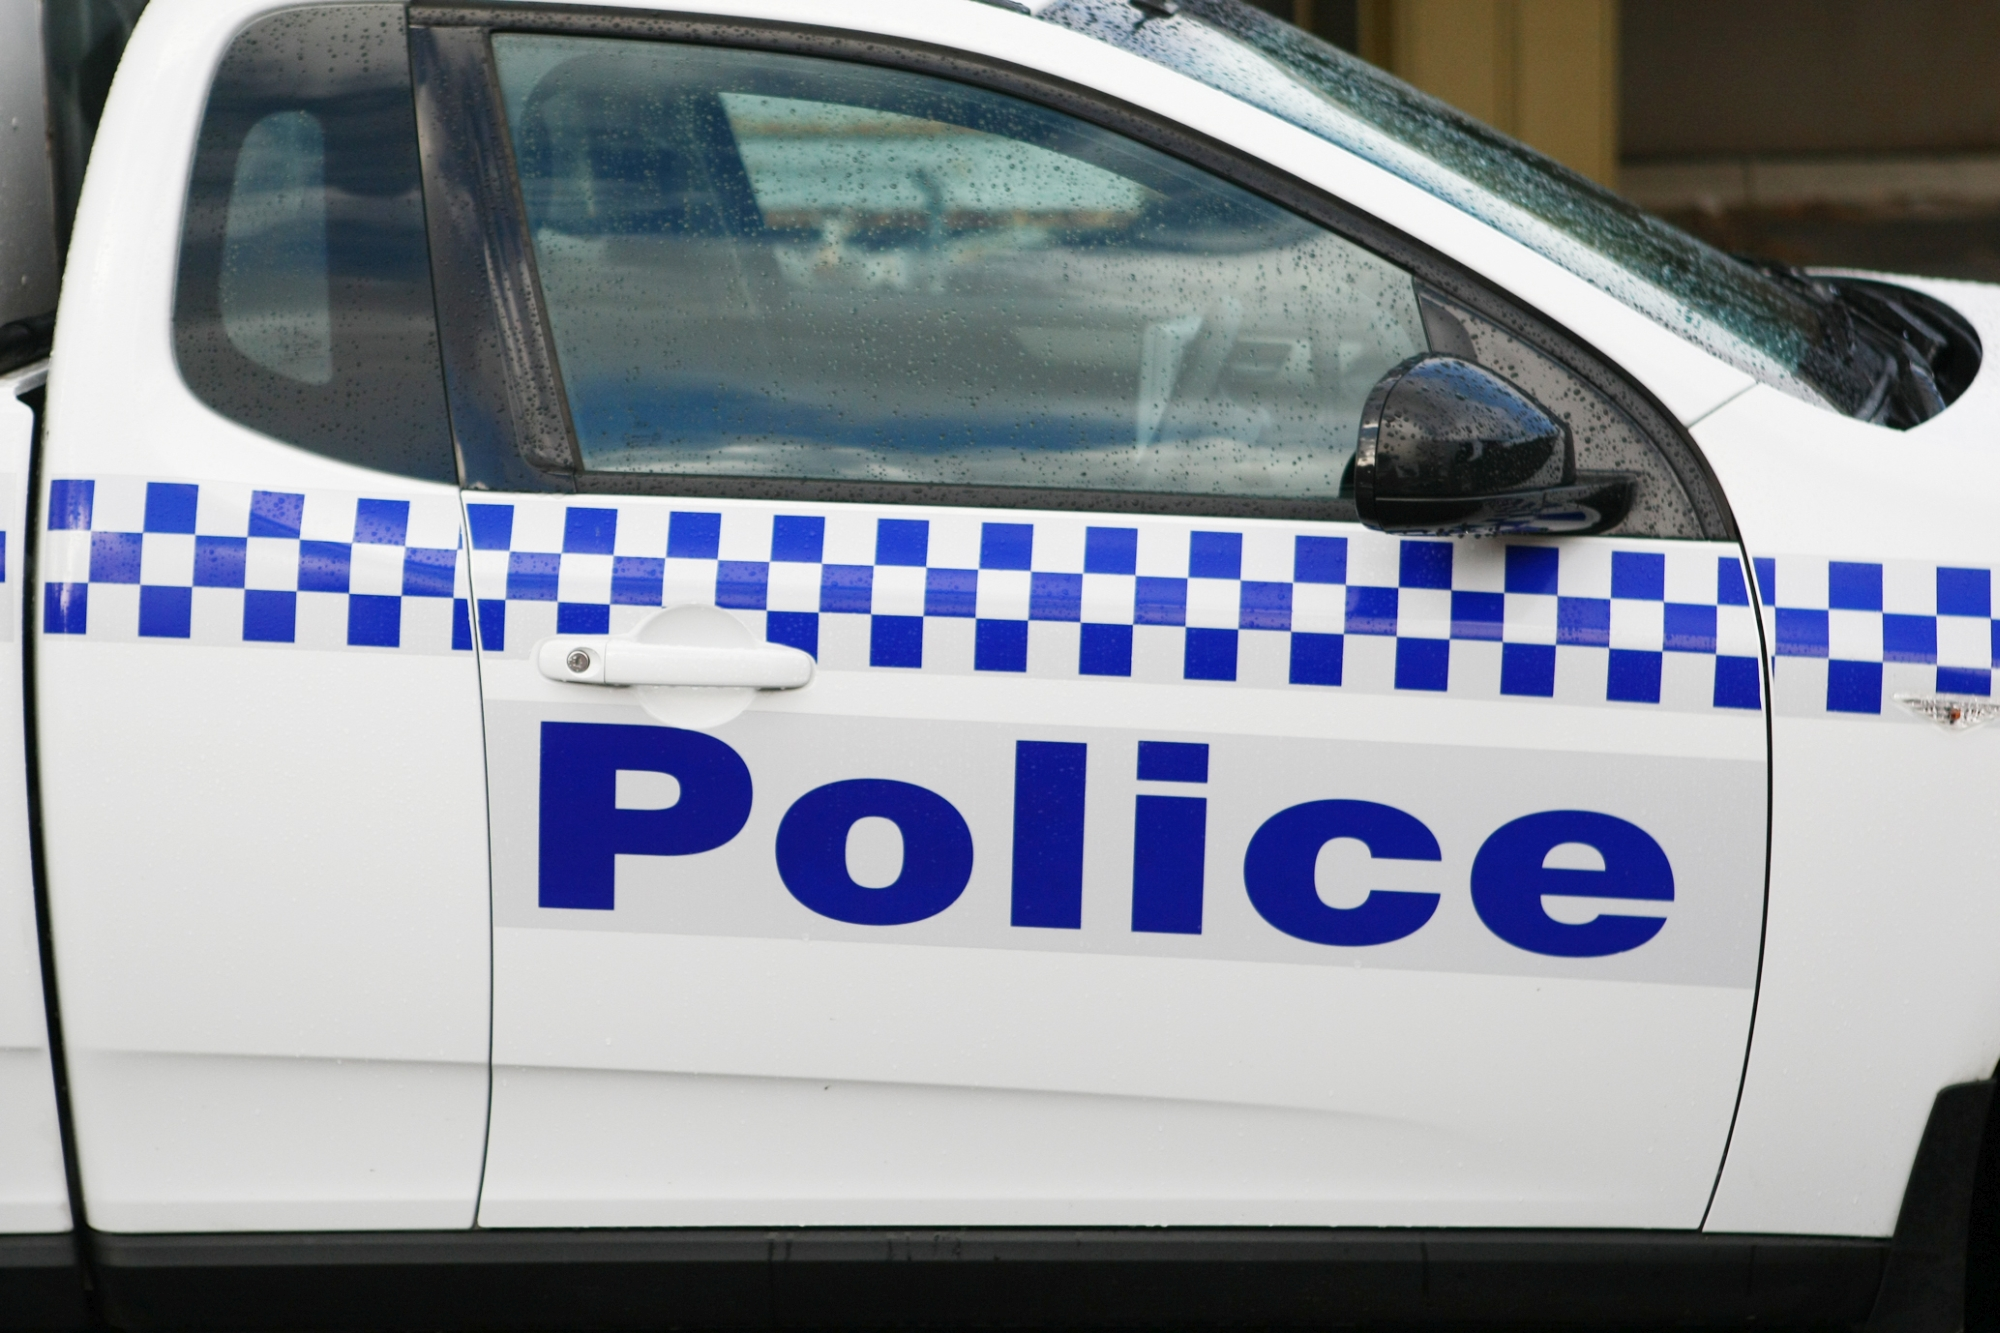 A man has been charged over an arson attack.